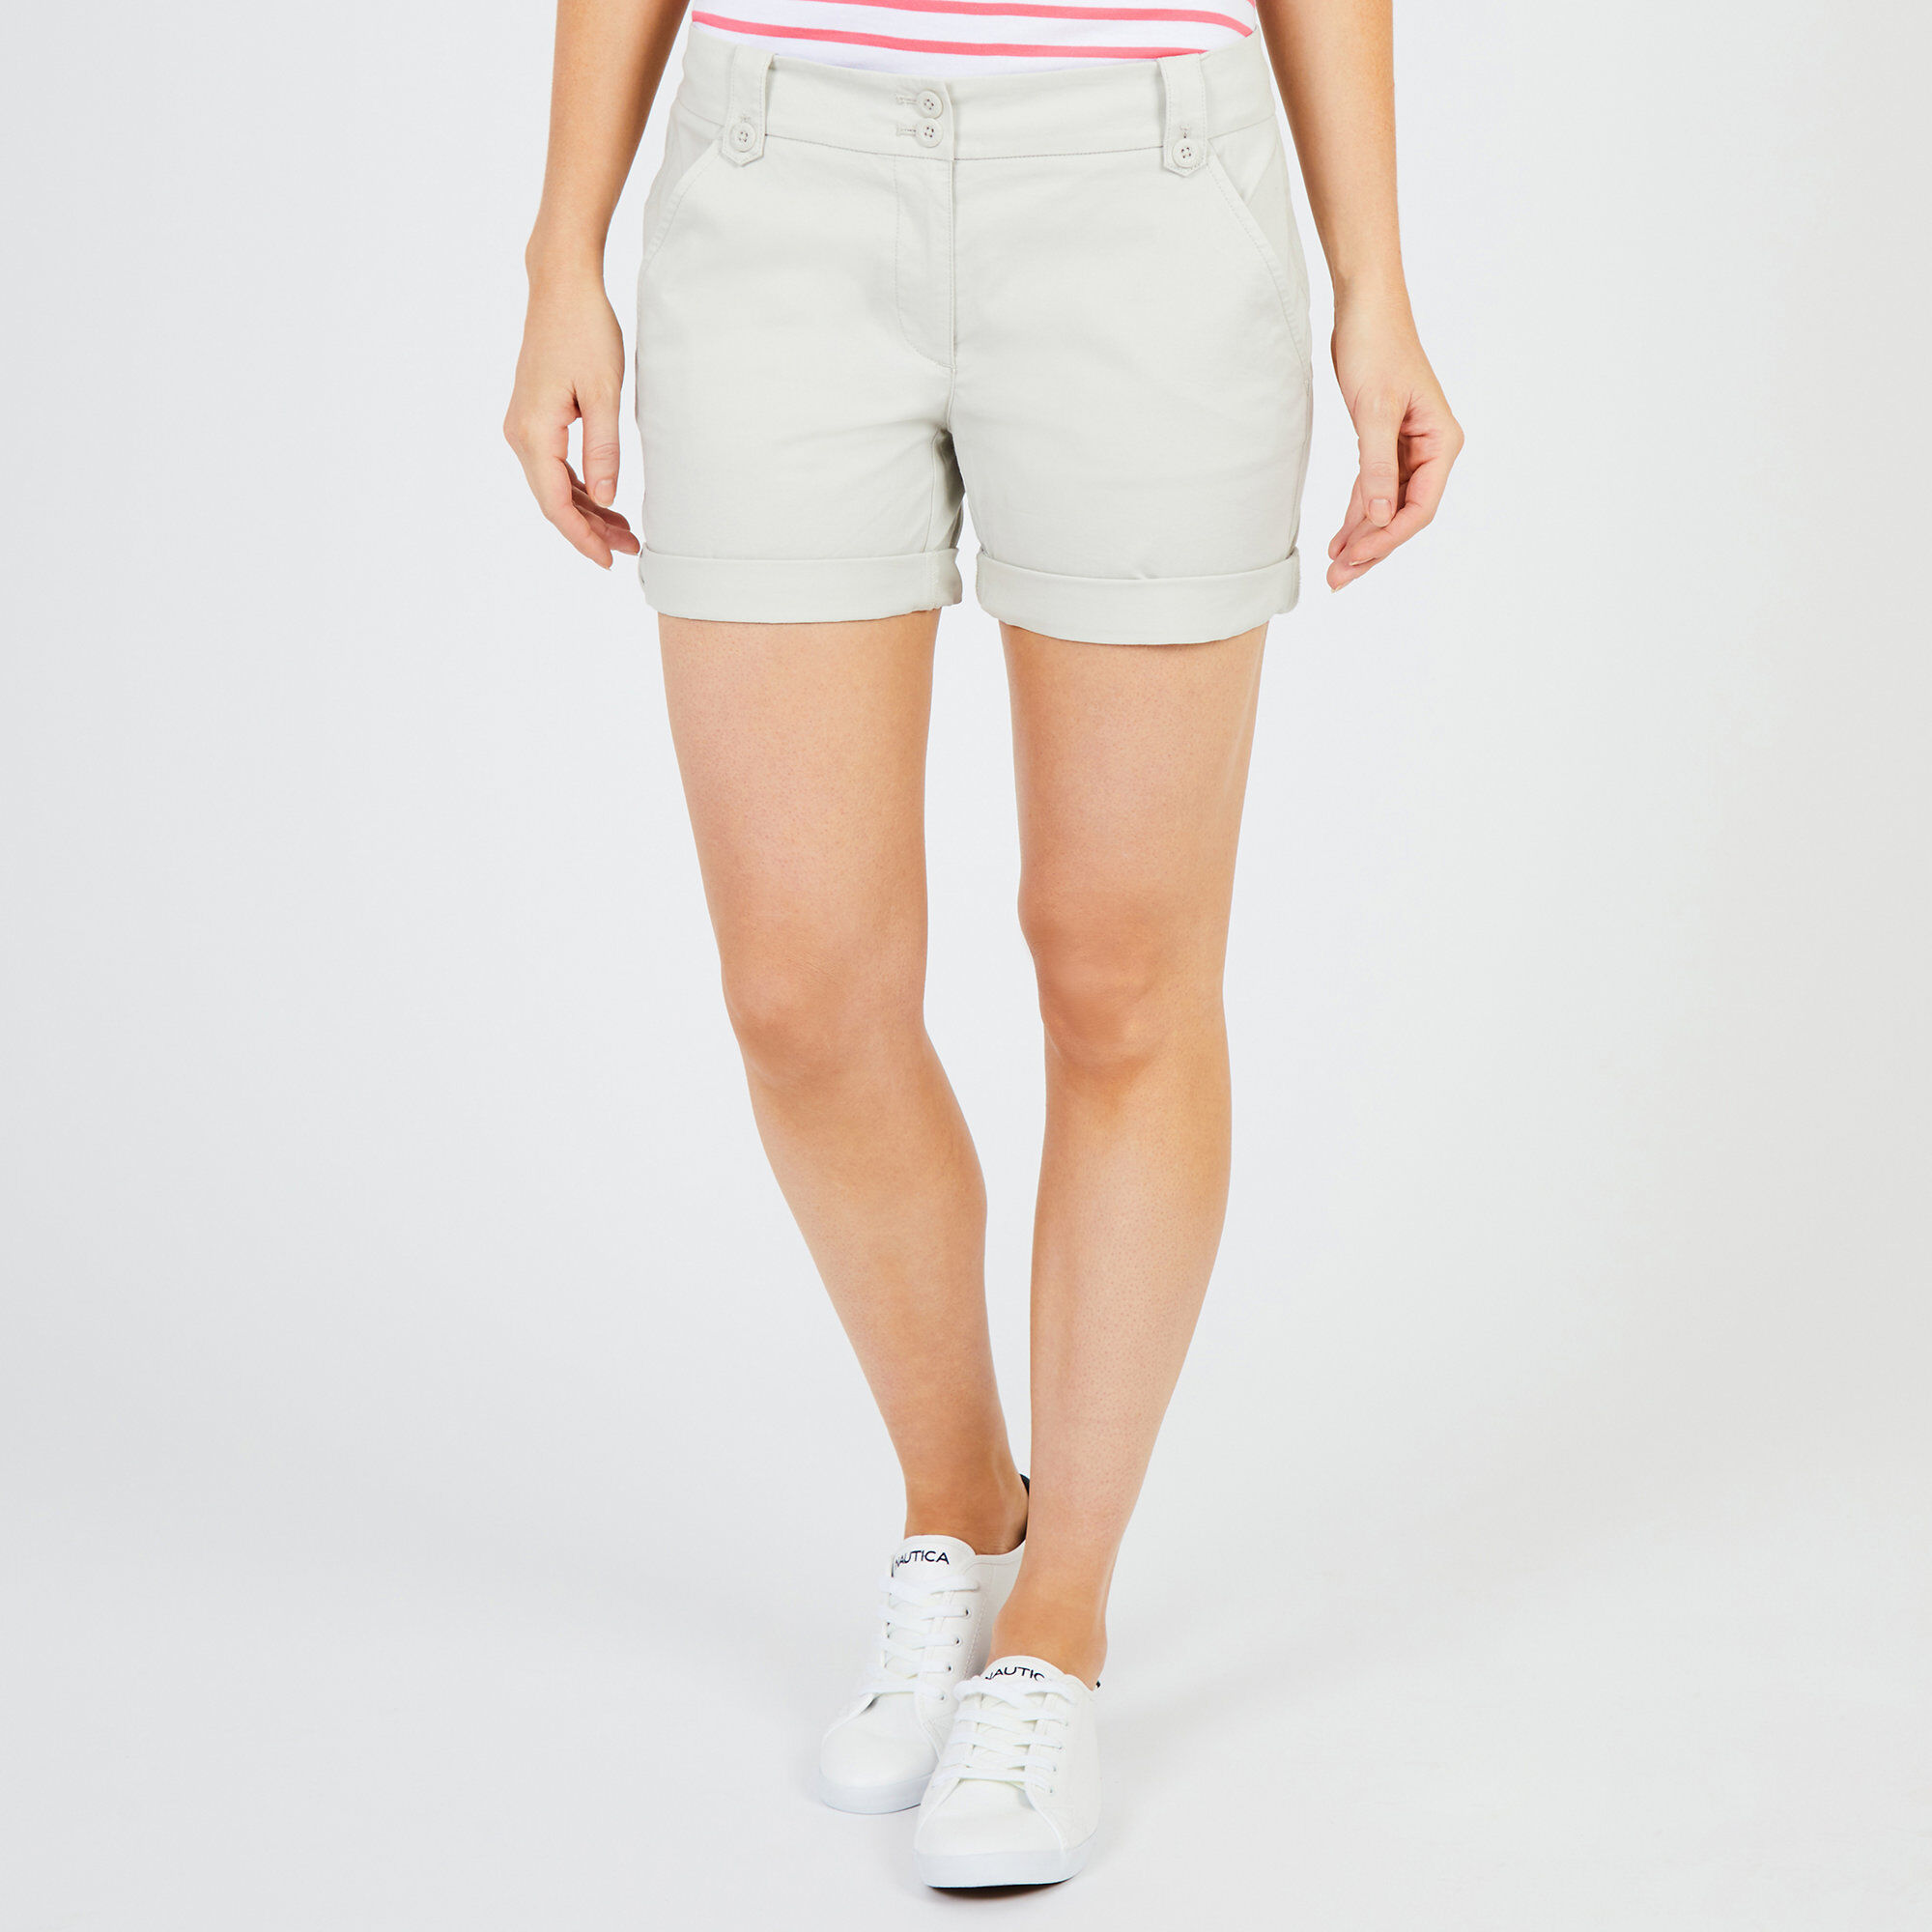 e6e8f8291 Image is loading Nautica-Womens-Flat-Front-Stretch-Twill-Shorts-7-